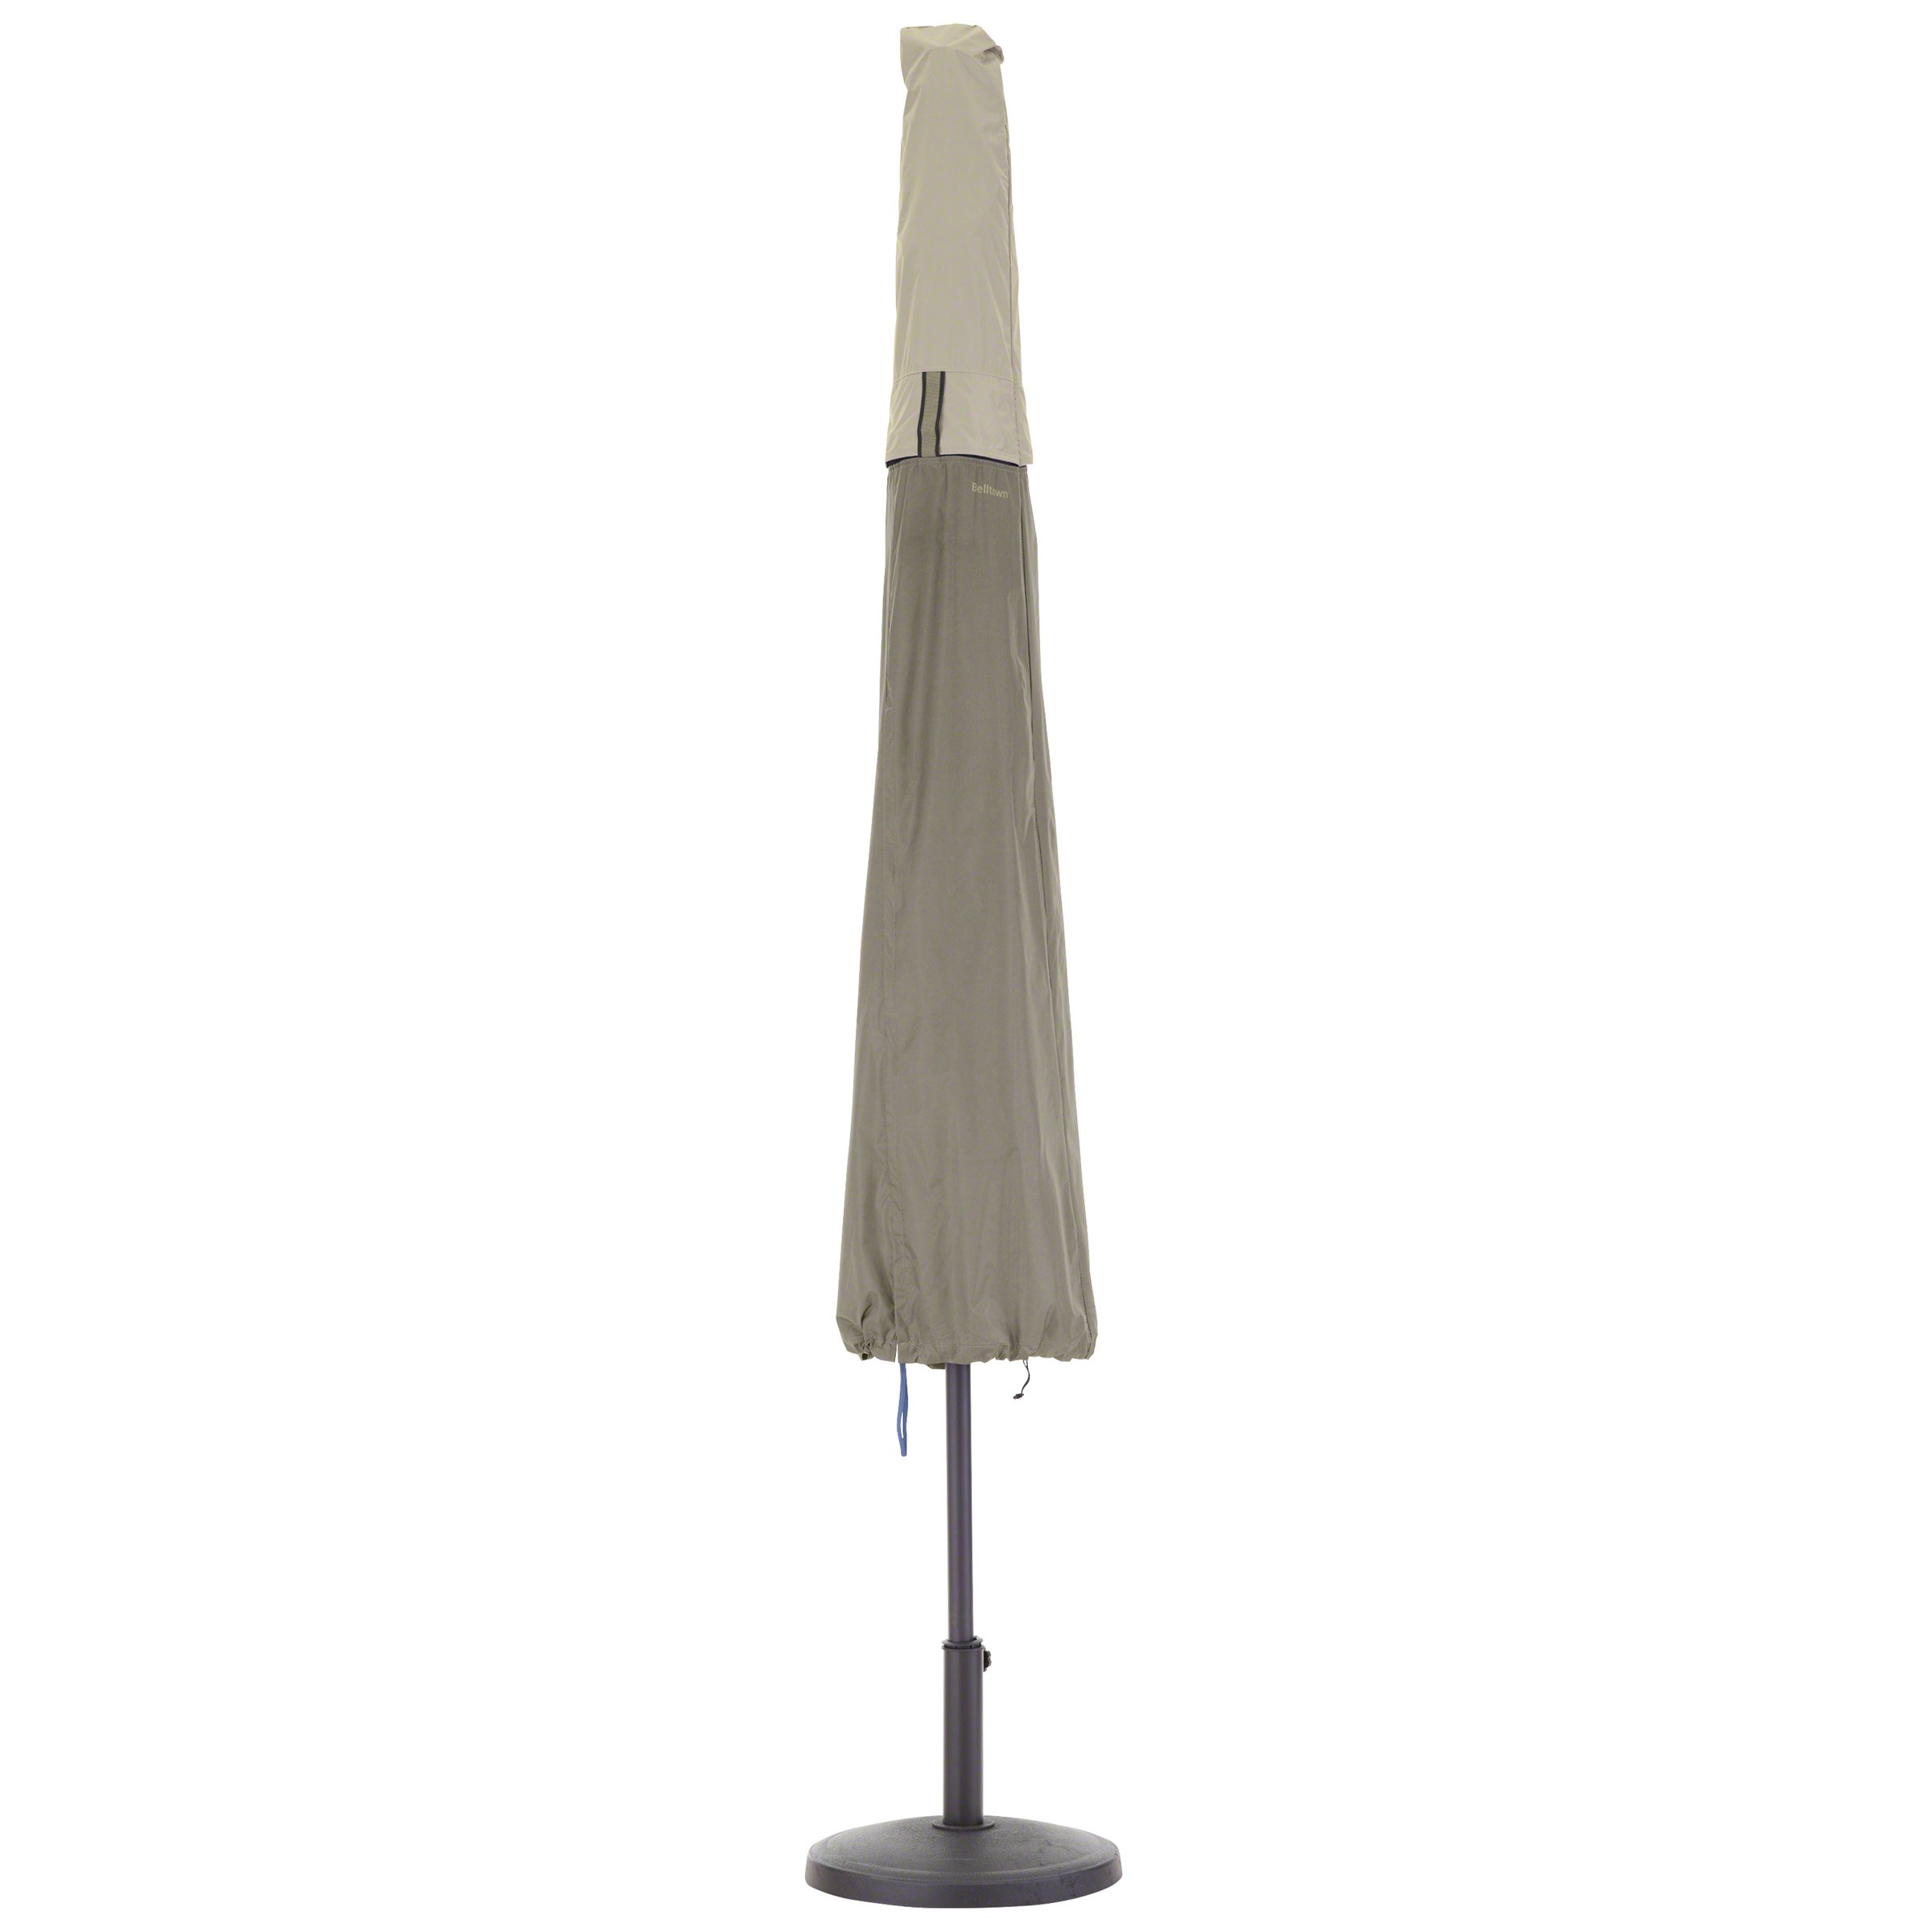 Classic Accessories 55-272-011001-00 Belltown Outdoor Patio Umbrella Cover, Grey